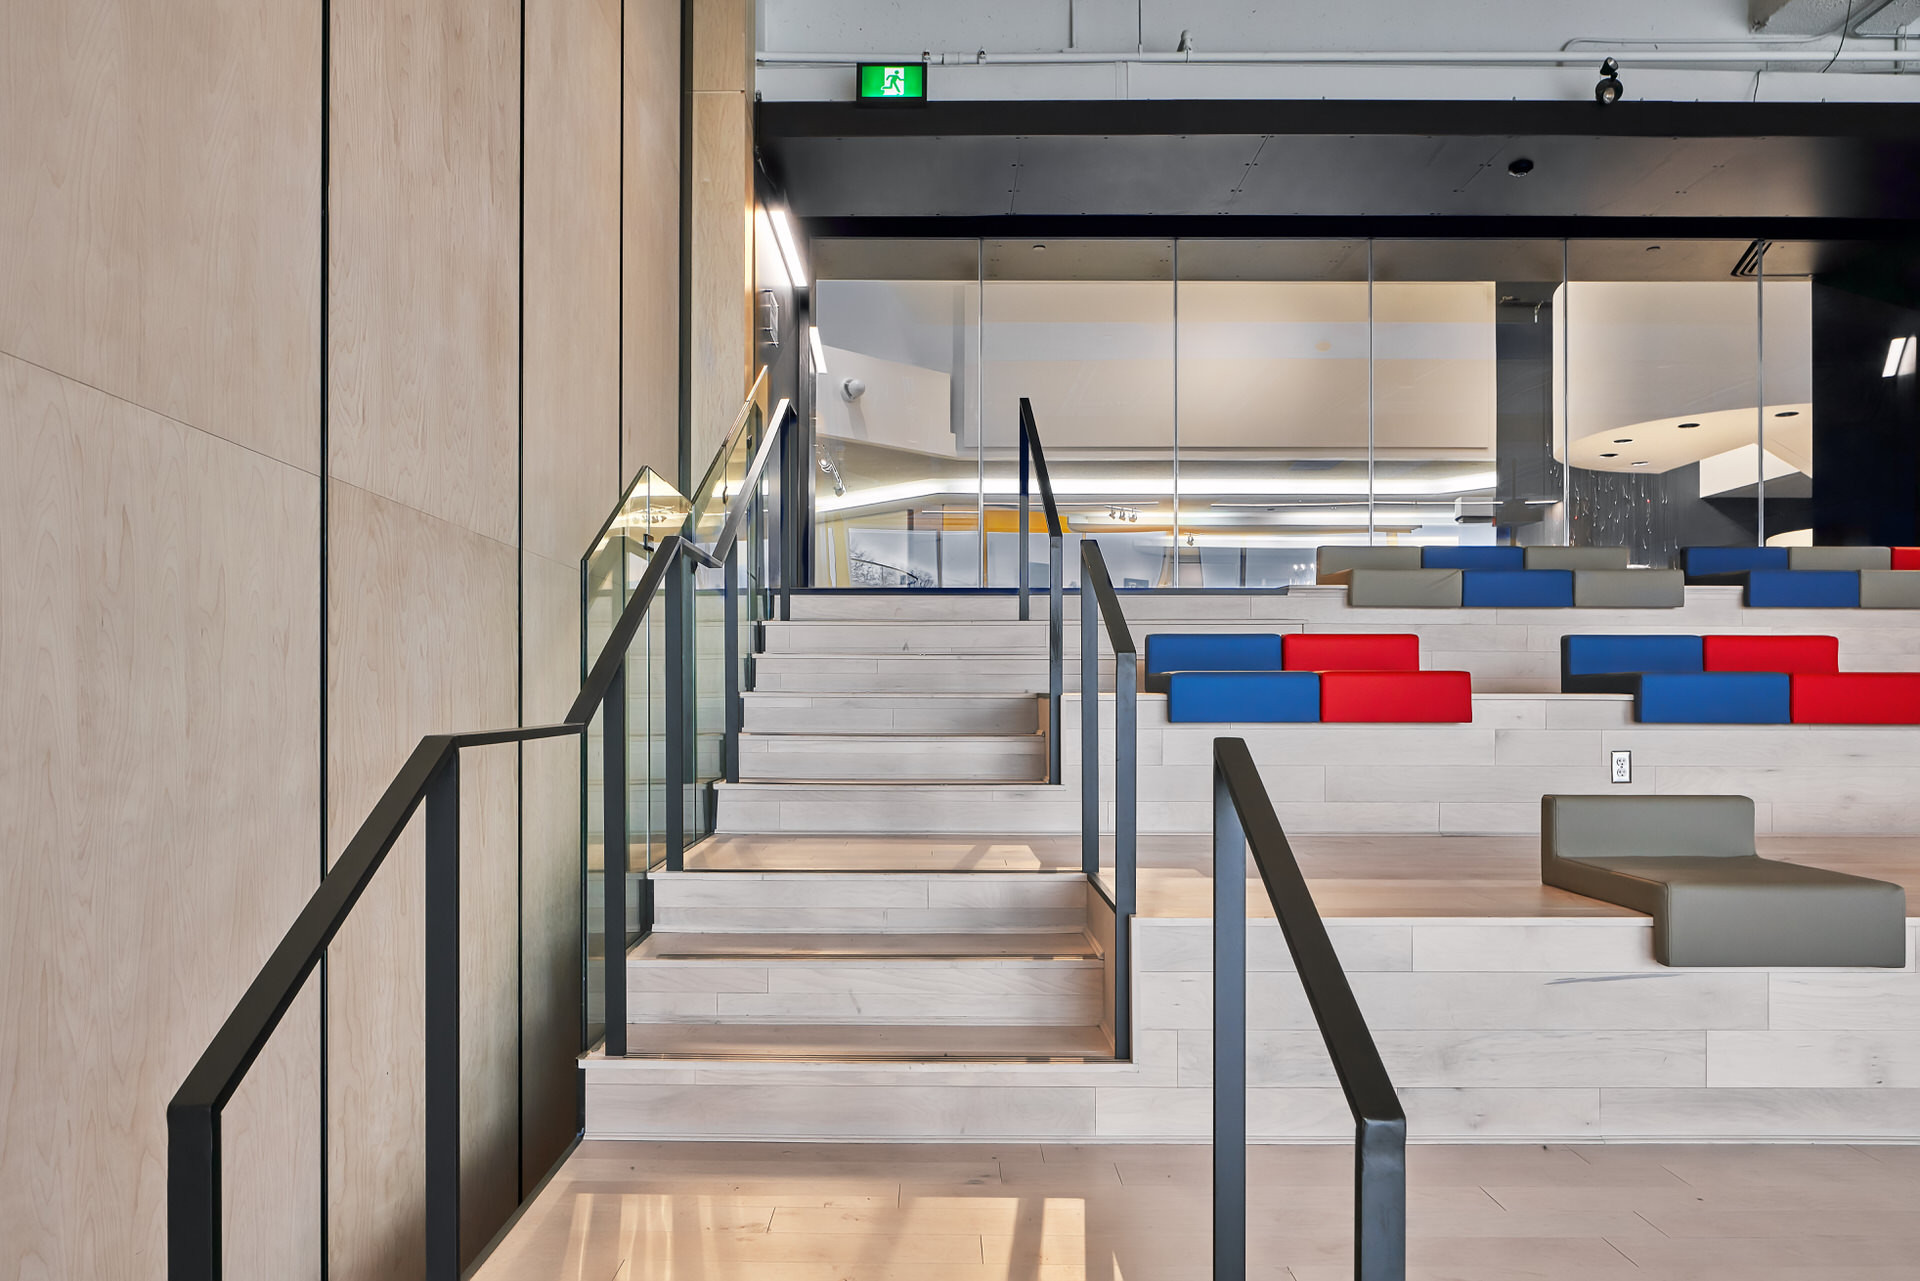 Interior architectural staircase photo at Museum London by Scott Webb Photography